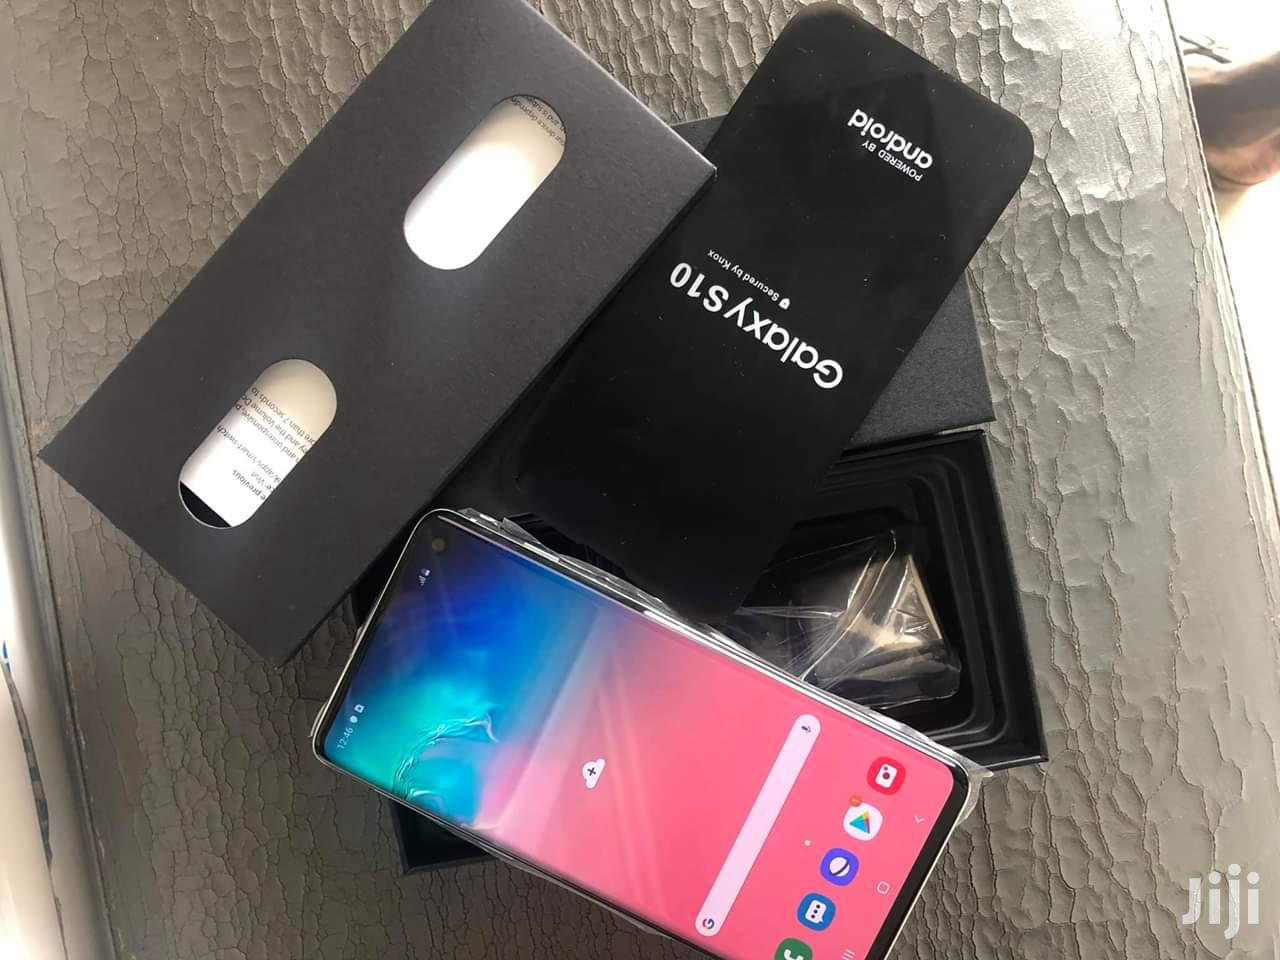 New Samsung Galaxy S10 128 GB | Mobile Phones for sale in Accra Metropolitan, Greater Accra, Ghana